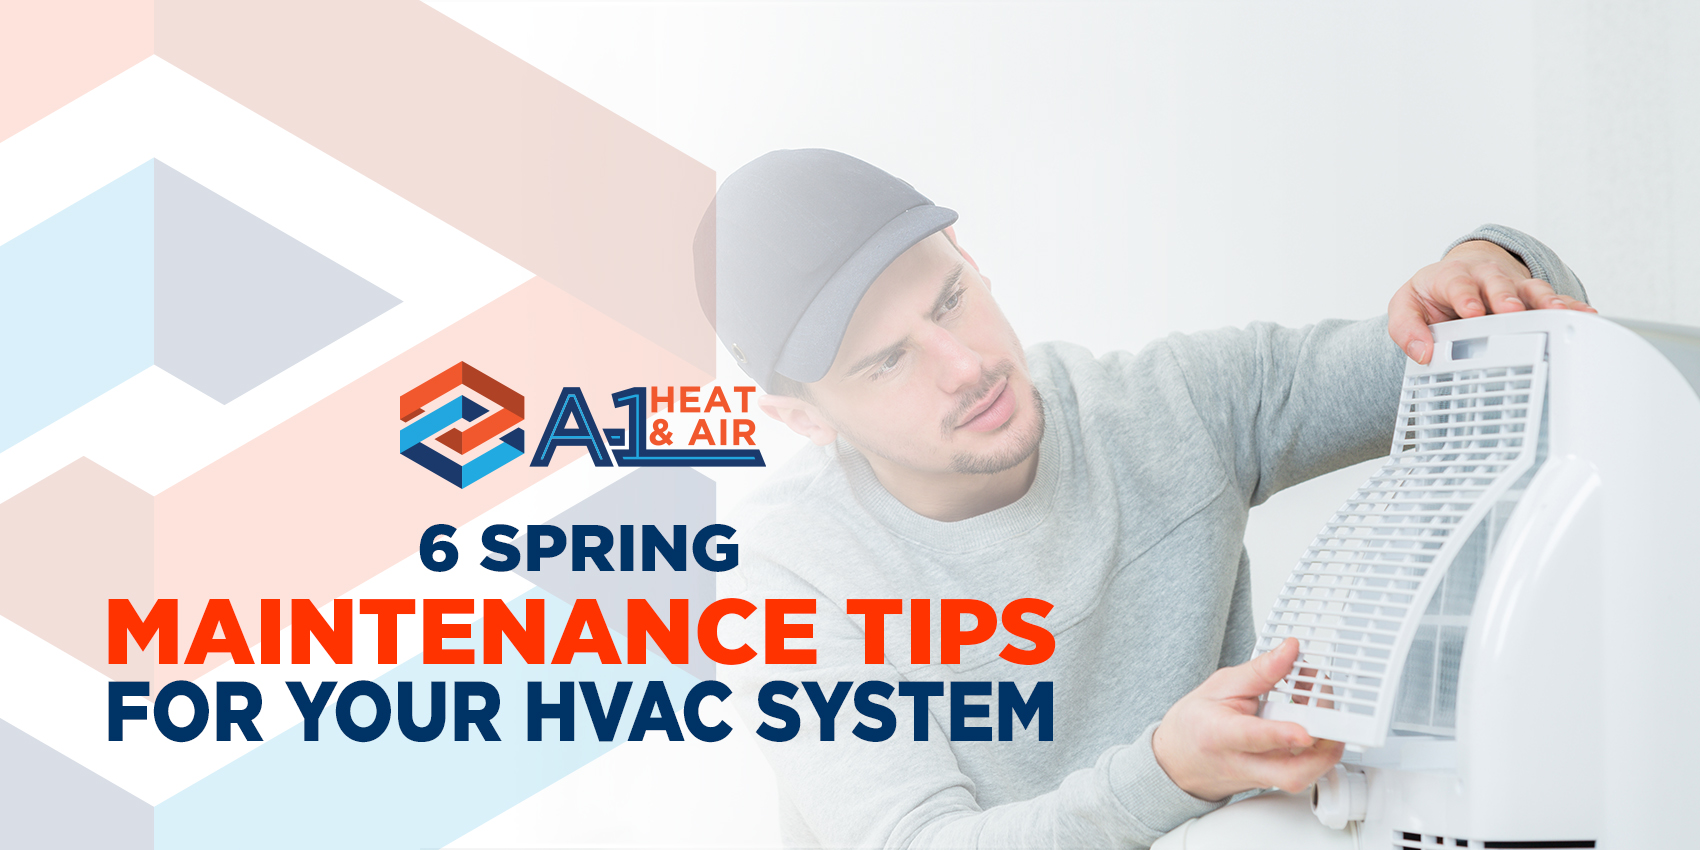 6 Spring Maintenance Tips for Your HVAC System